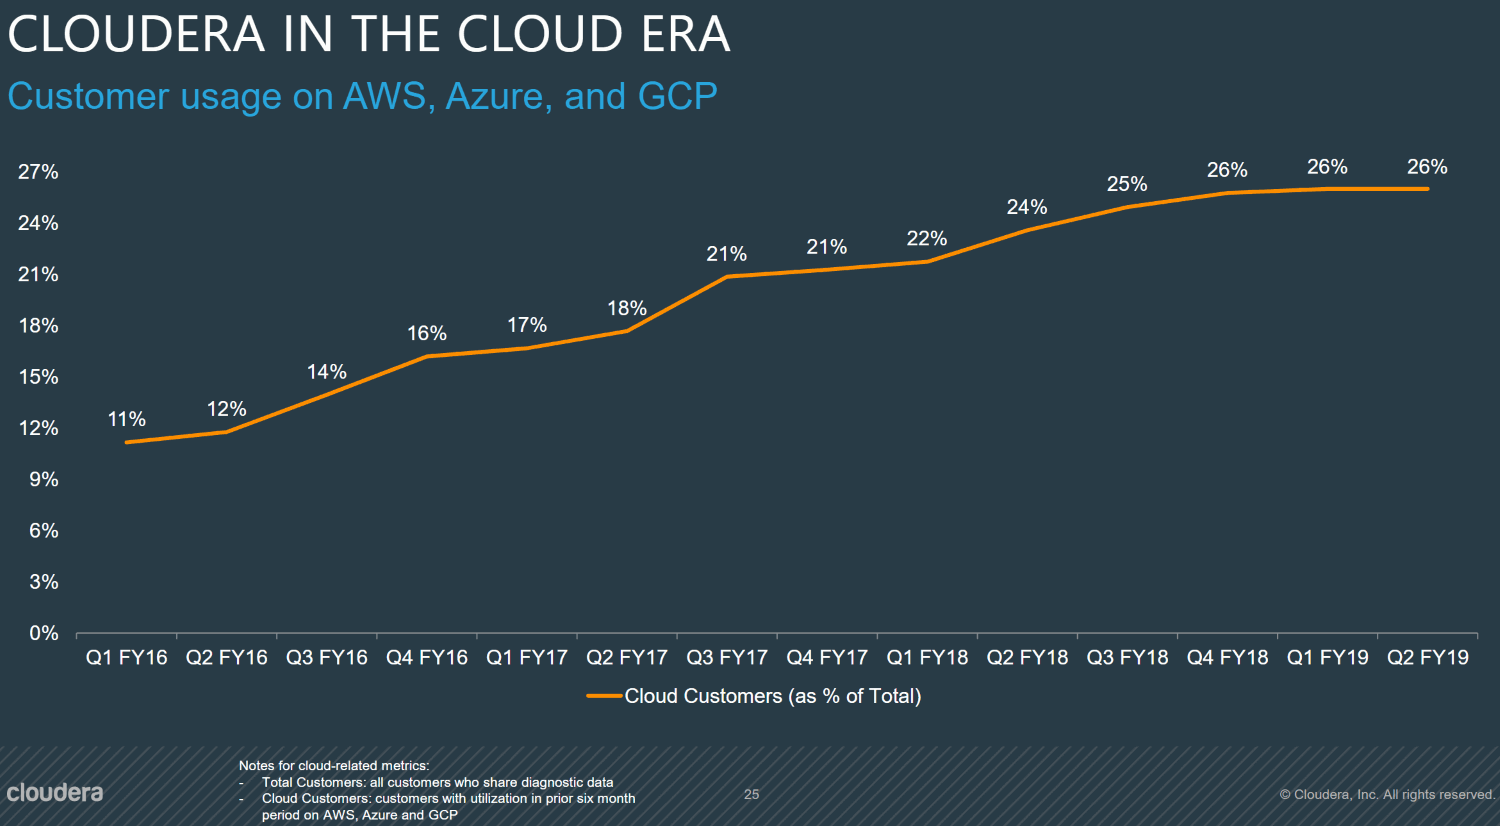 Cloudera-Customer-usage-on-AWS-Azure-GCP